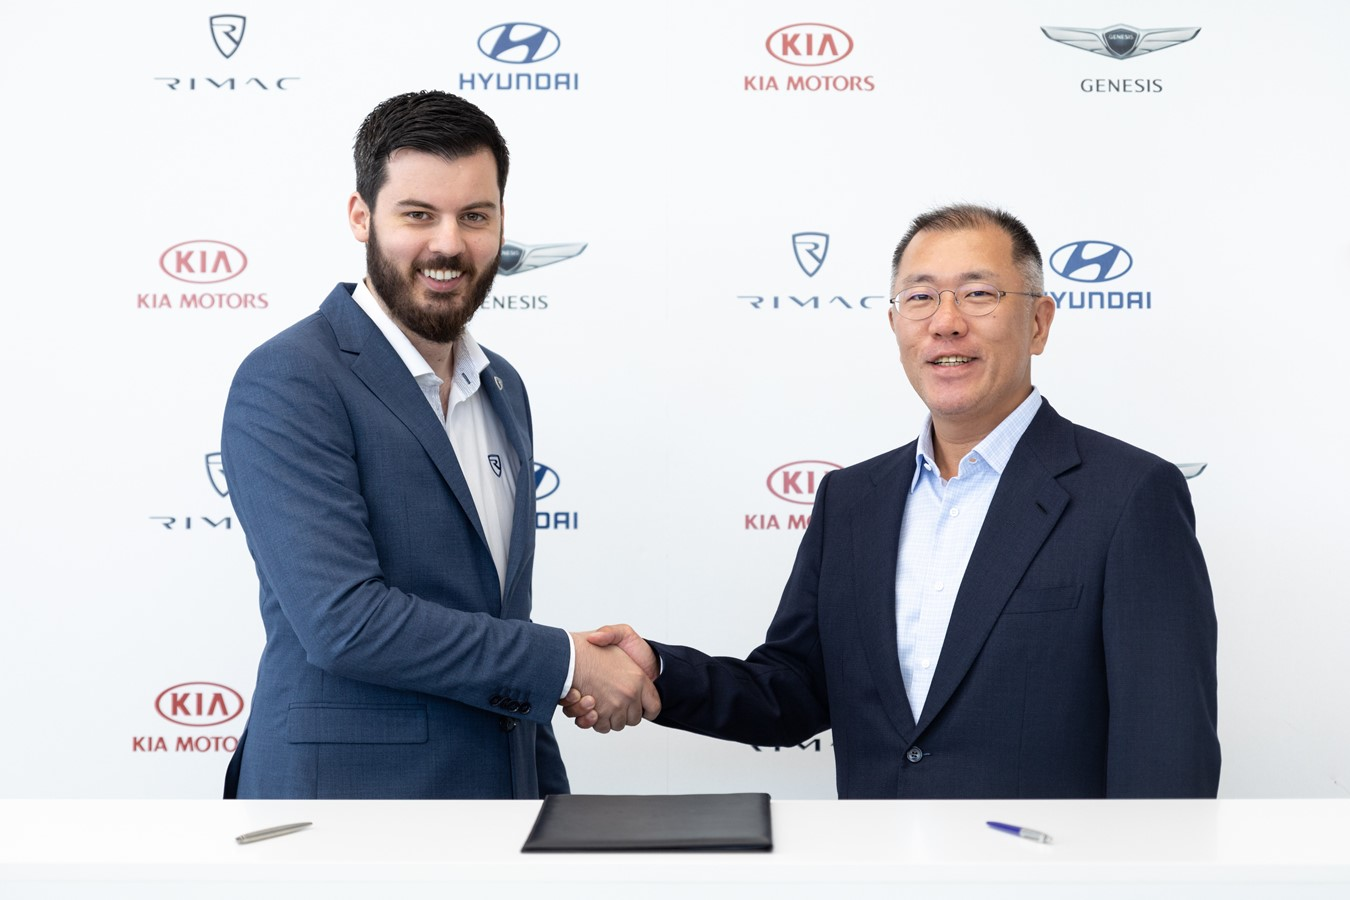 HYUNDAI MOTOR GROUP PARTNERS WITH RIMAC TO ACCELERATE DEVELOPMENT OF HIGH-PERFORMANCE EVS